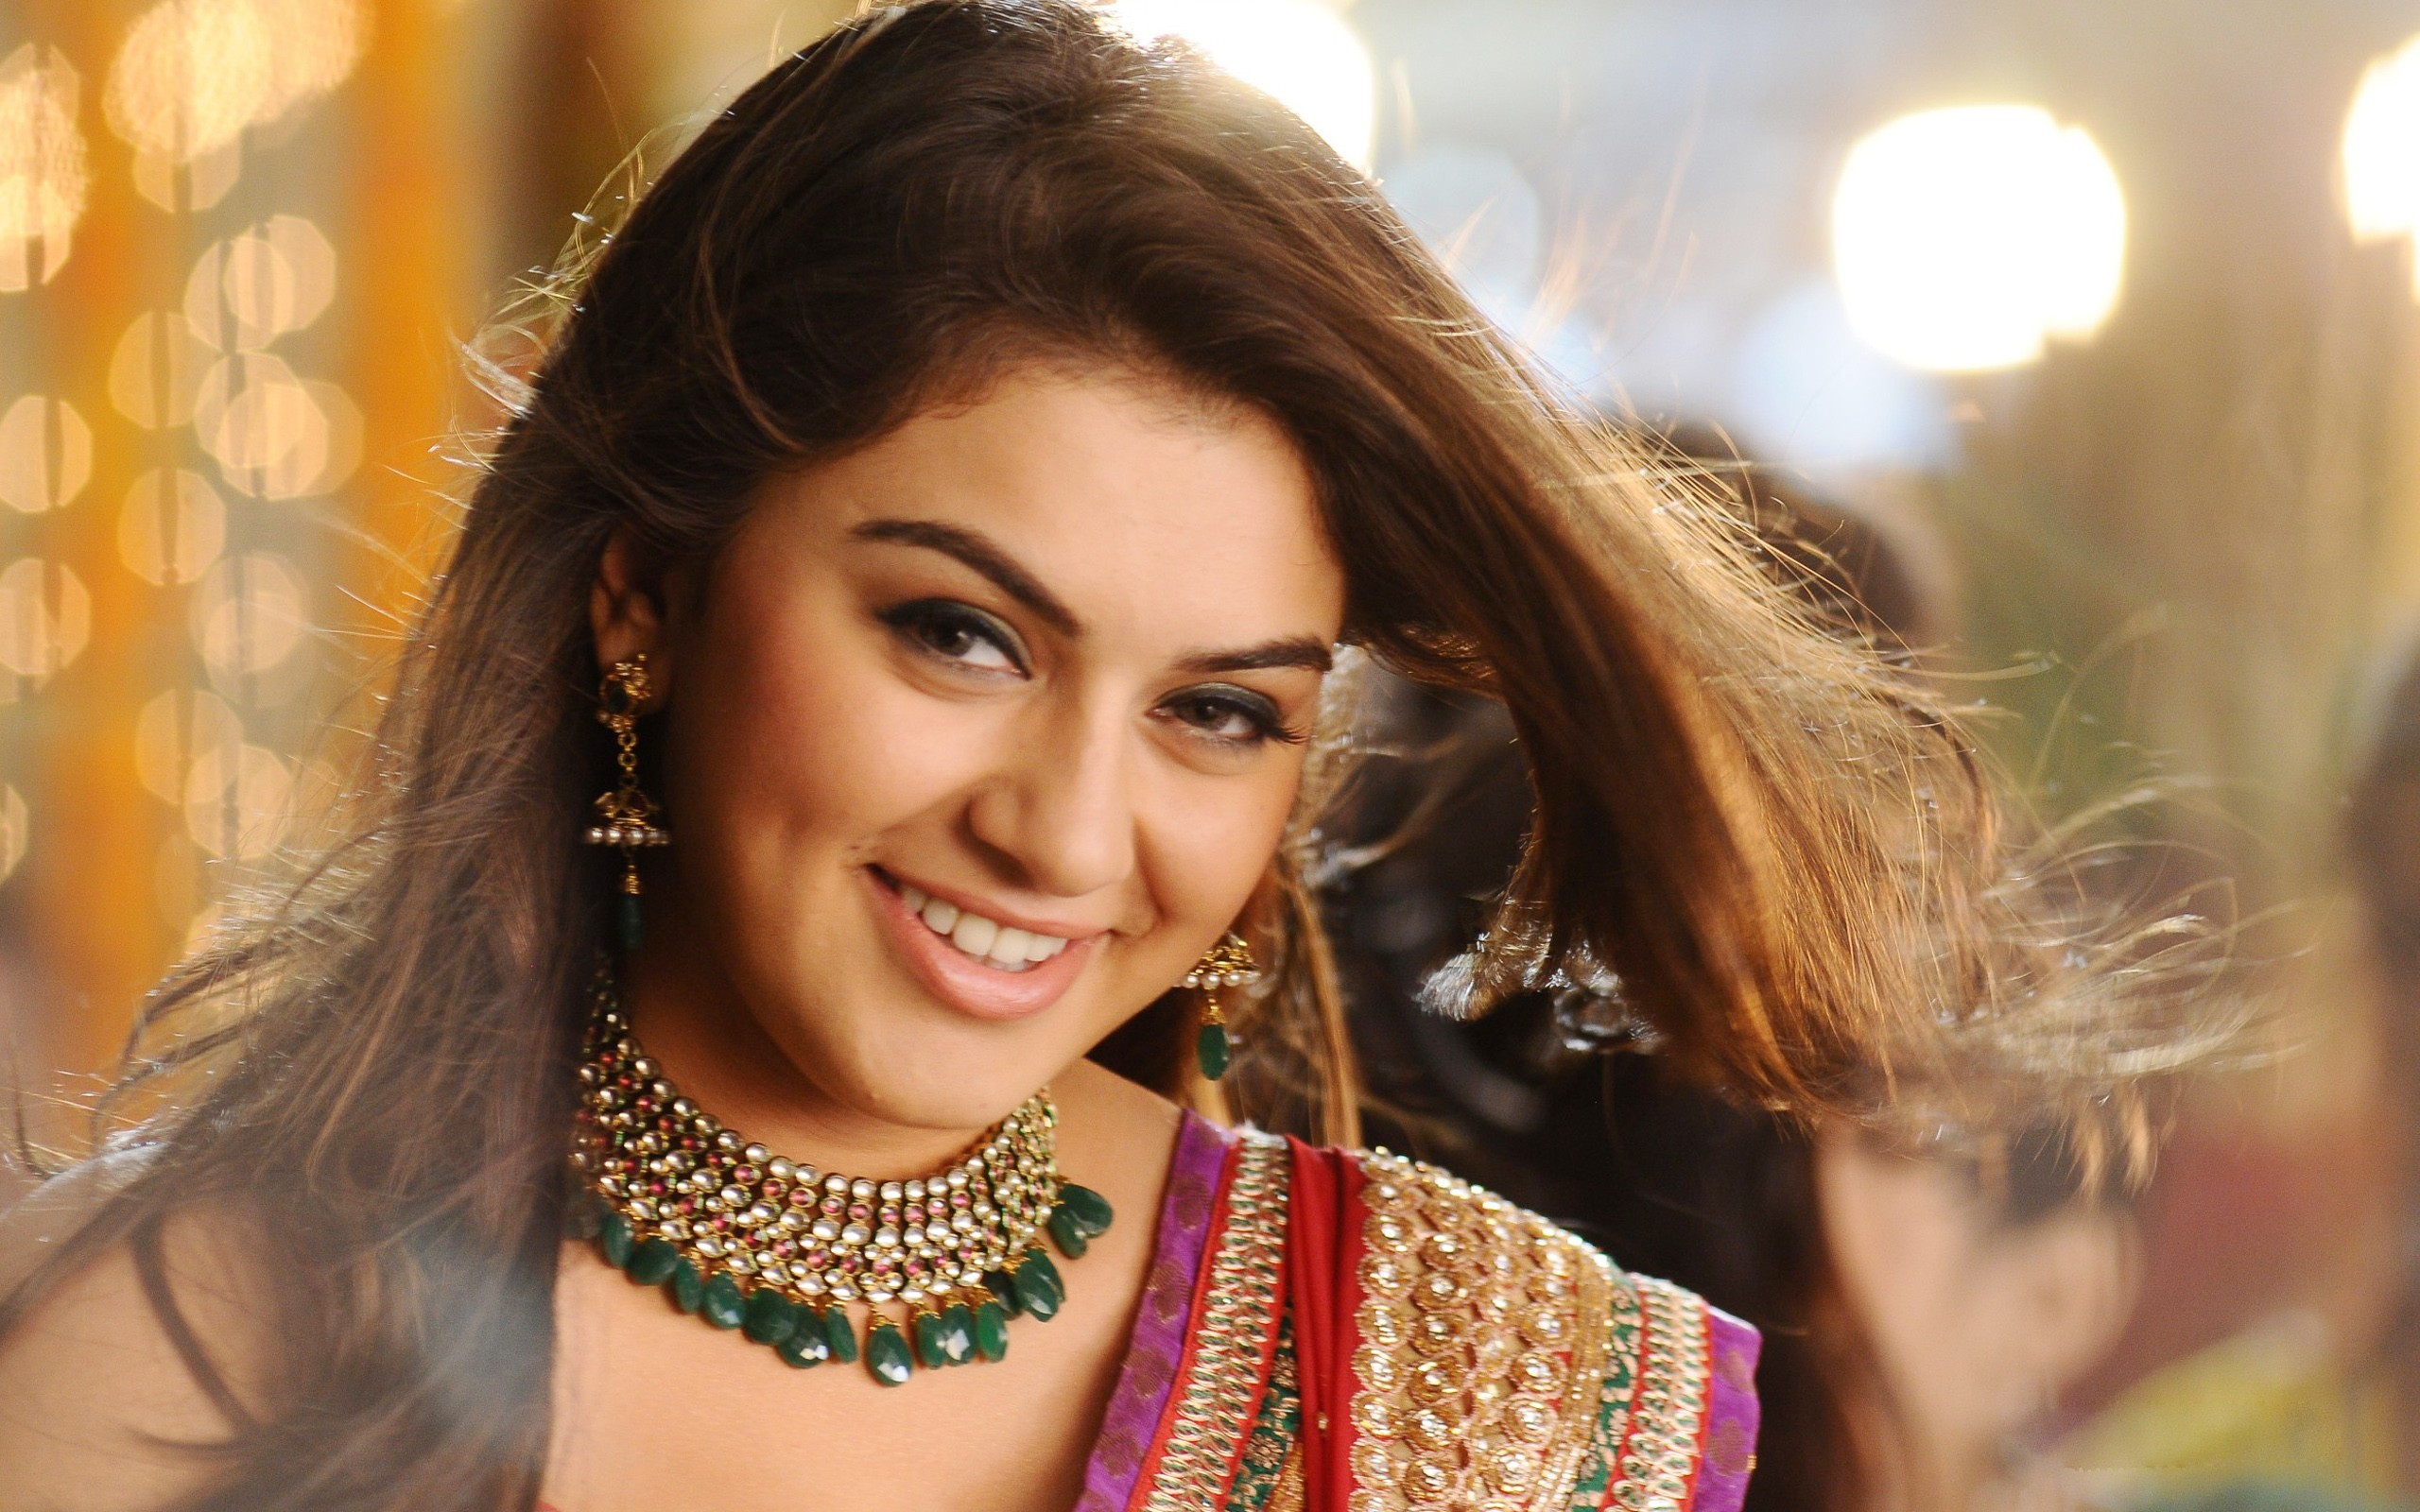 Beautiful Hansika Motwani Smiling Face Mobile Free Background Desktop Images Hd